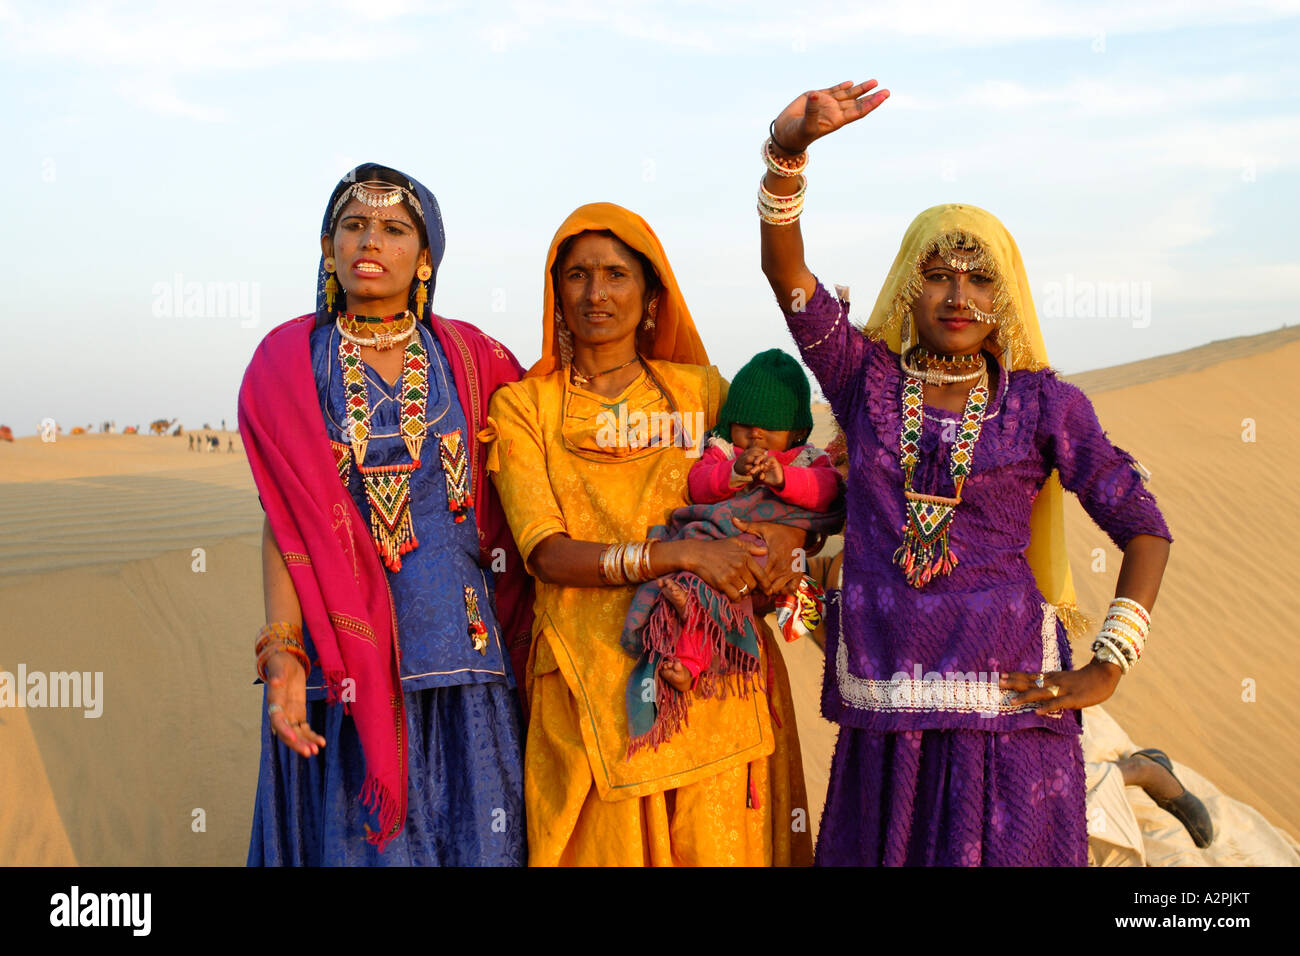 A Traditional Indian Family Bids Visitors Hello Near The Thar Desert Stock Photo 10574603 Alamy